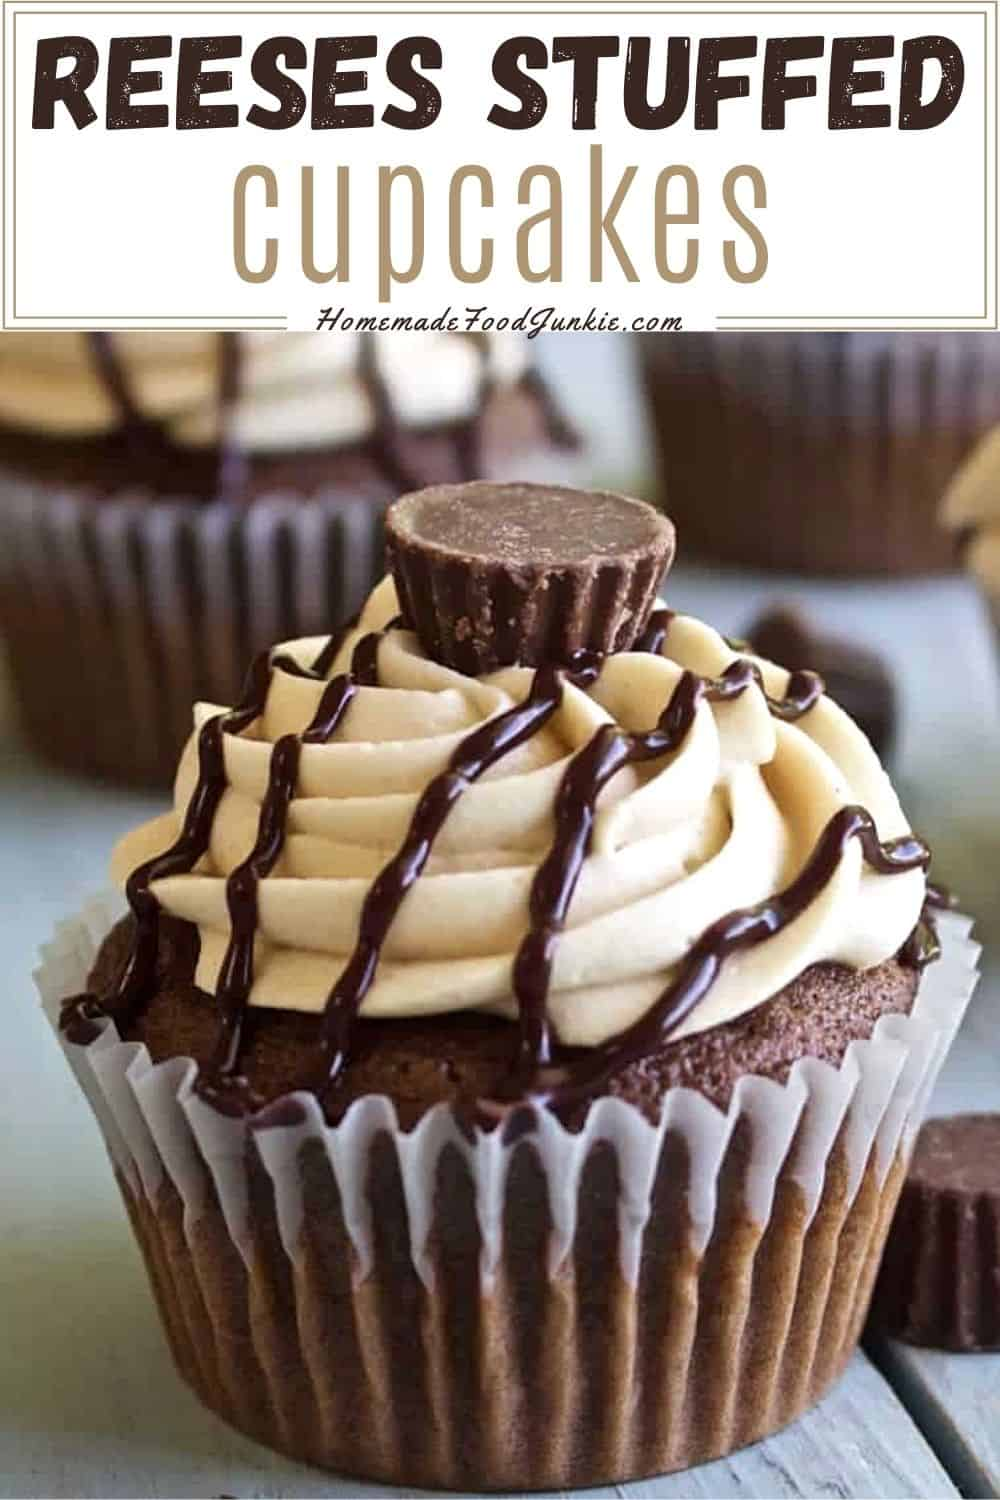 Reeses stuffed cupcakes-pin image